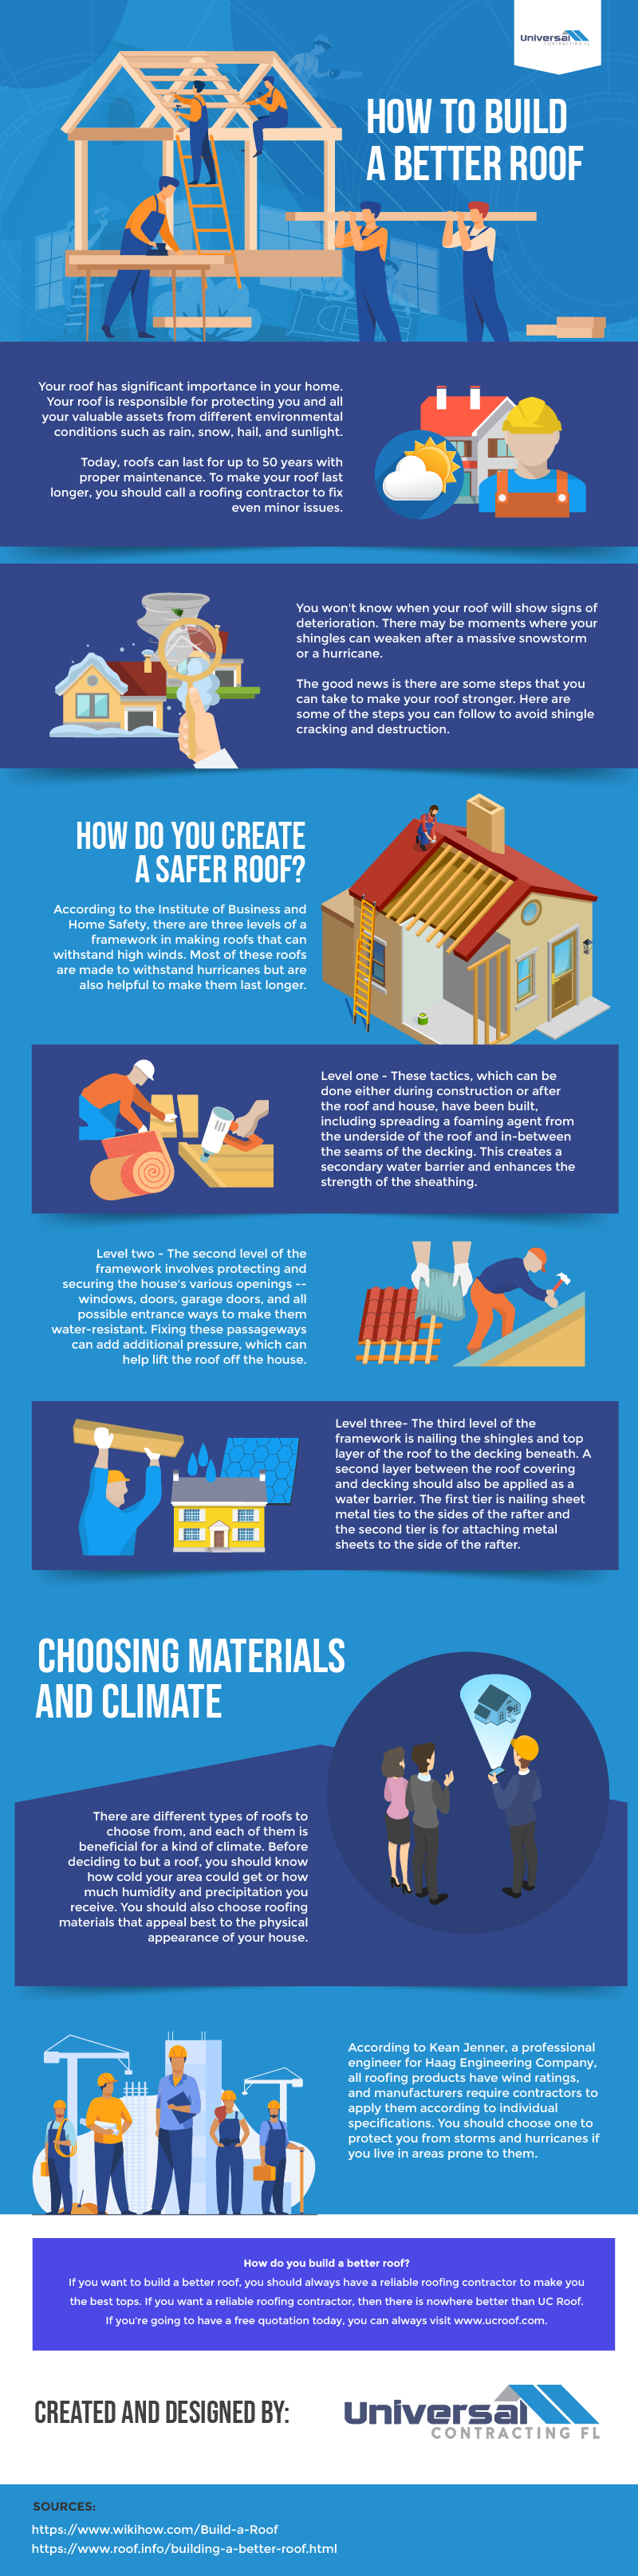 How to build a better roof - Infographic